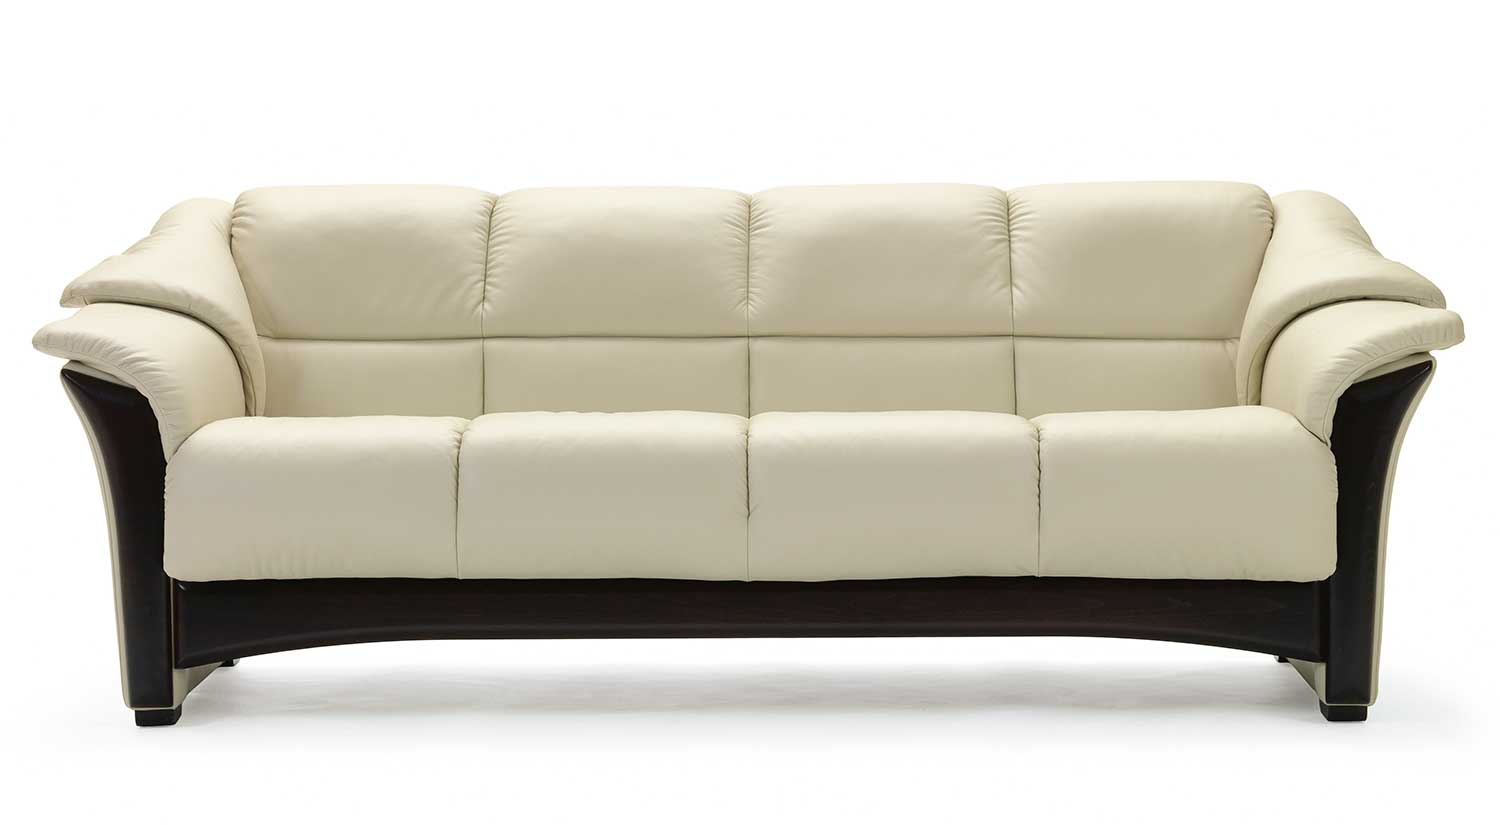 Stressless Sofa Rund Circle Furniture Oslo Sofa Ekornes Sofas Massachusetts